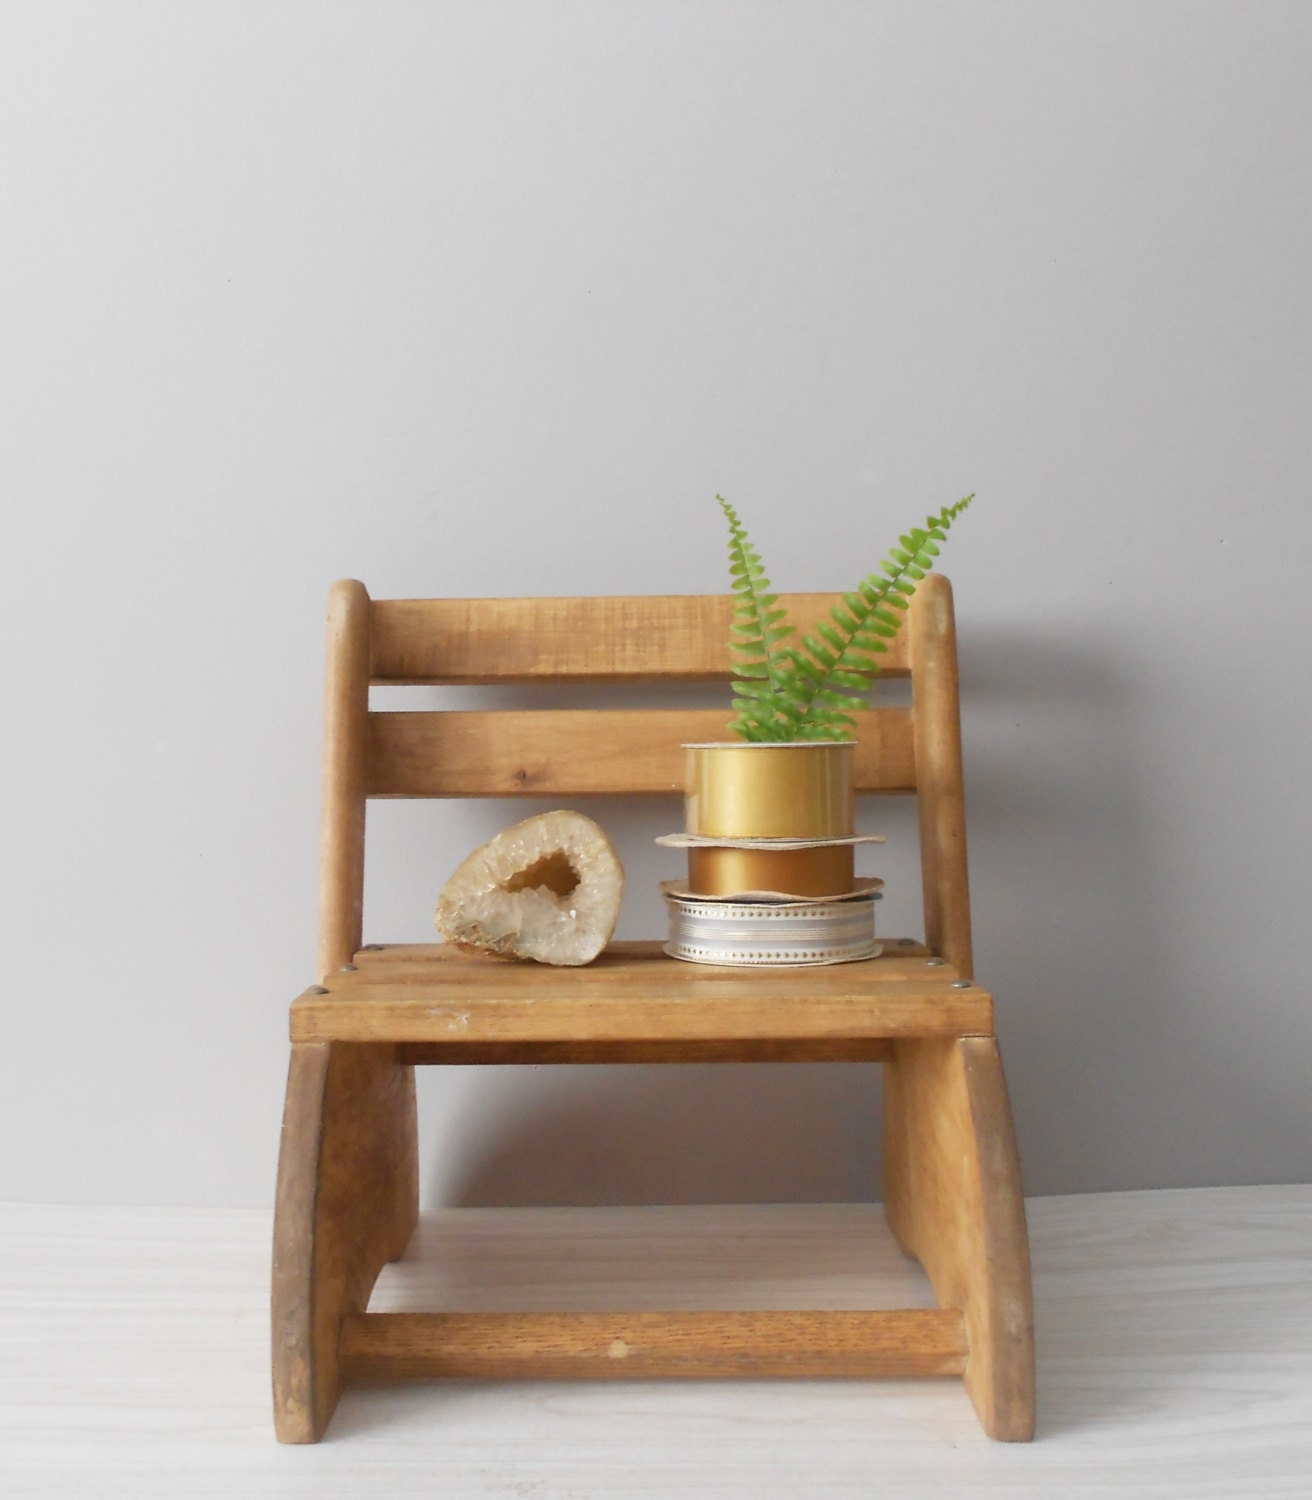 Hand Made Wood Bed For Children : wooden handmade folding child's chair // stepping stool // kids ...